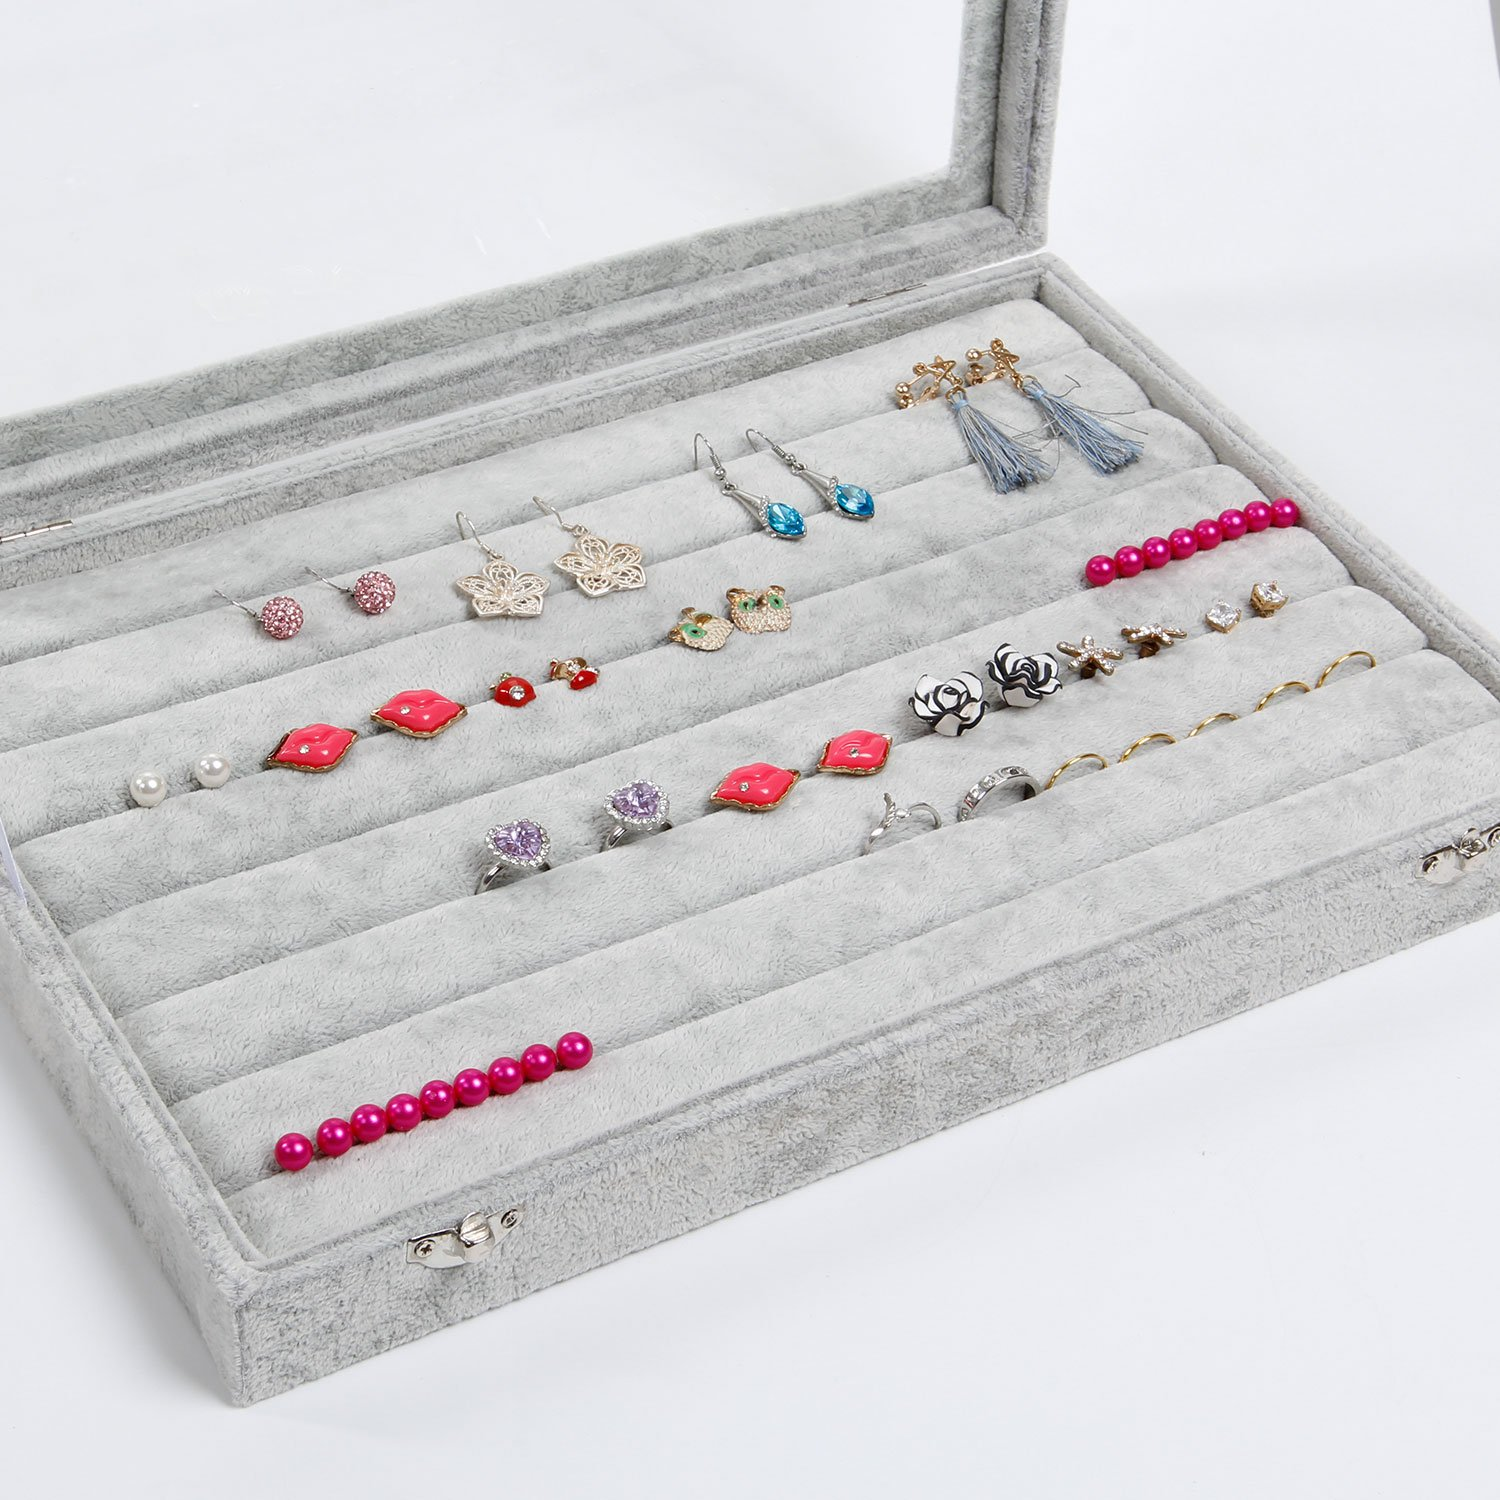 Valdler Clear Lid 7 Slots Jewelry Rings Earrings Tray Showcase Display Storage by Valdler (Image #4)